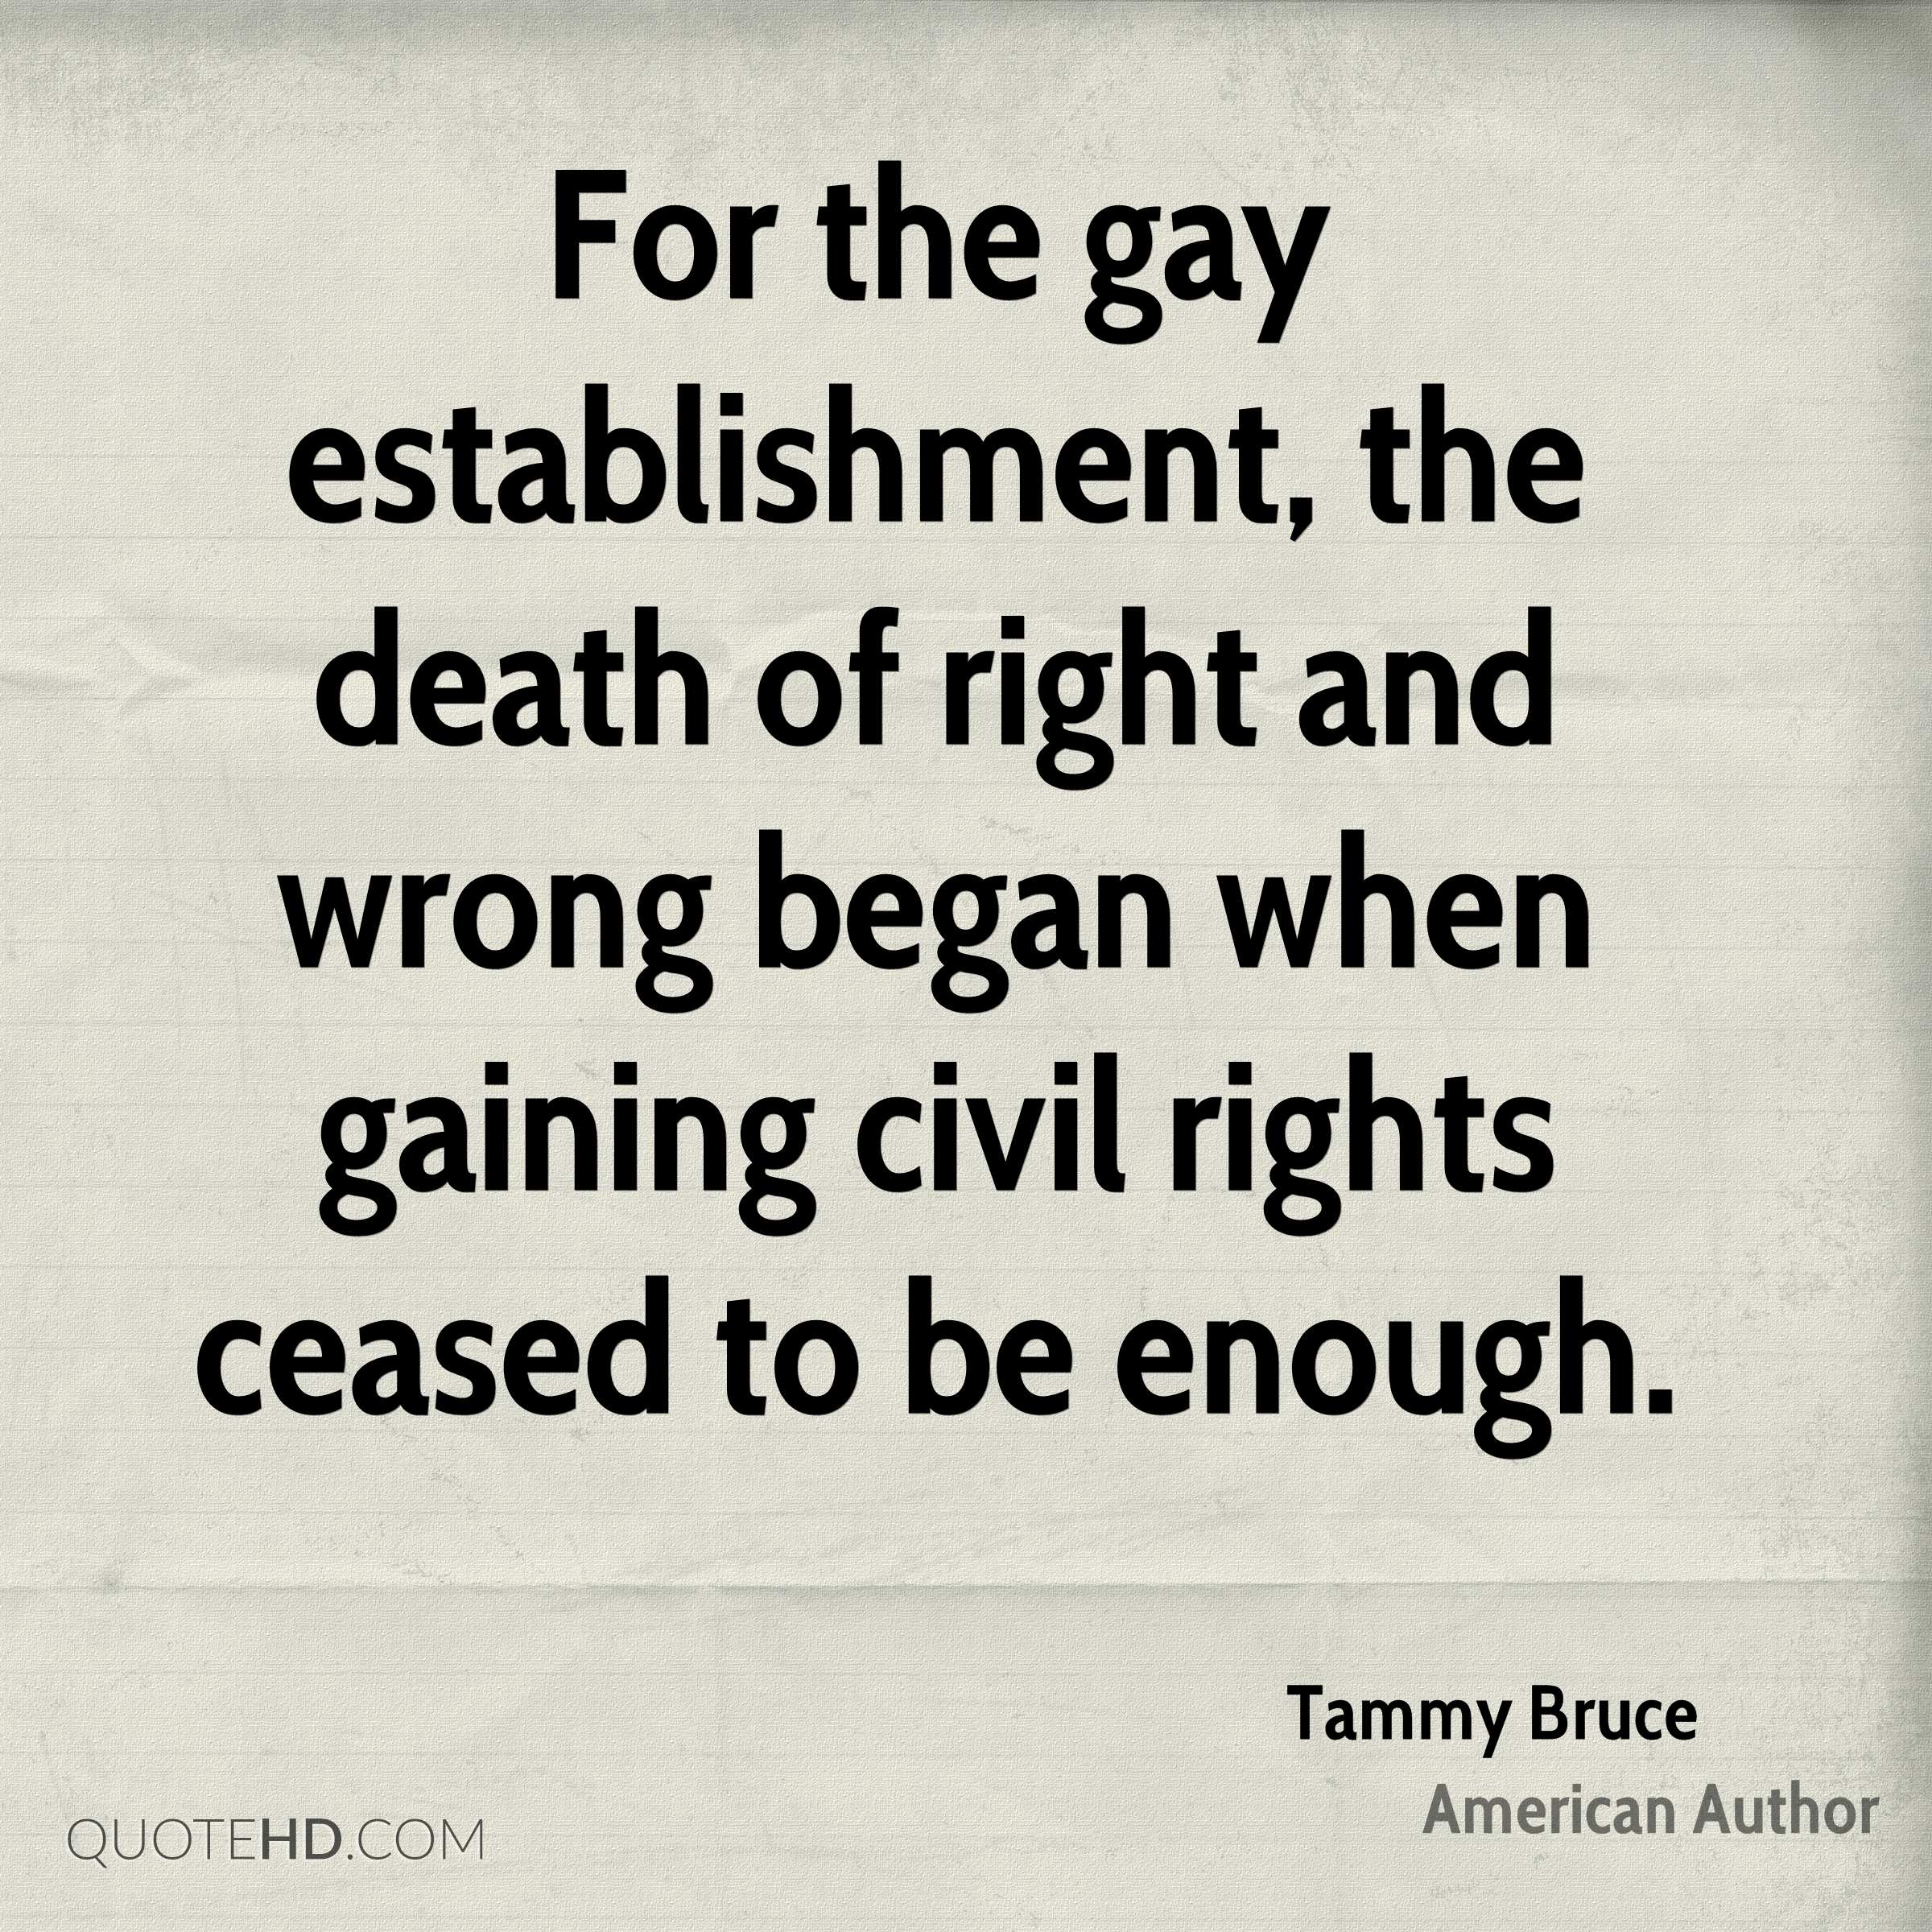 For the gay establishment, the death of right and wrong began when gaining civil rights ceased to be enough.